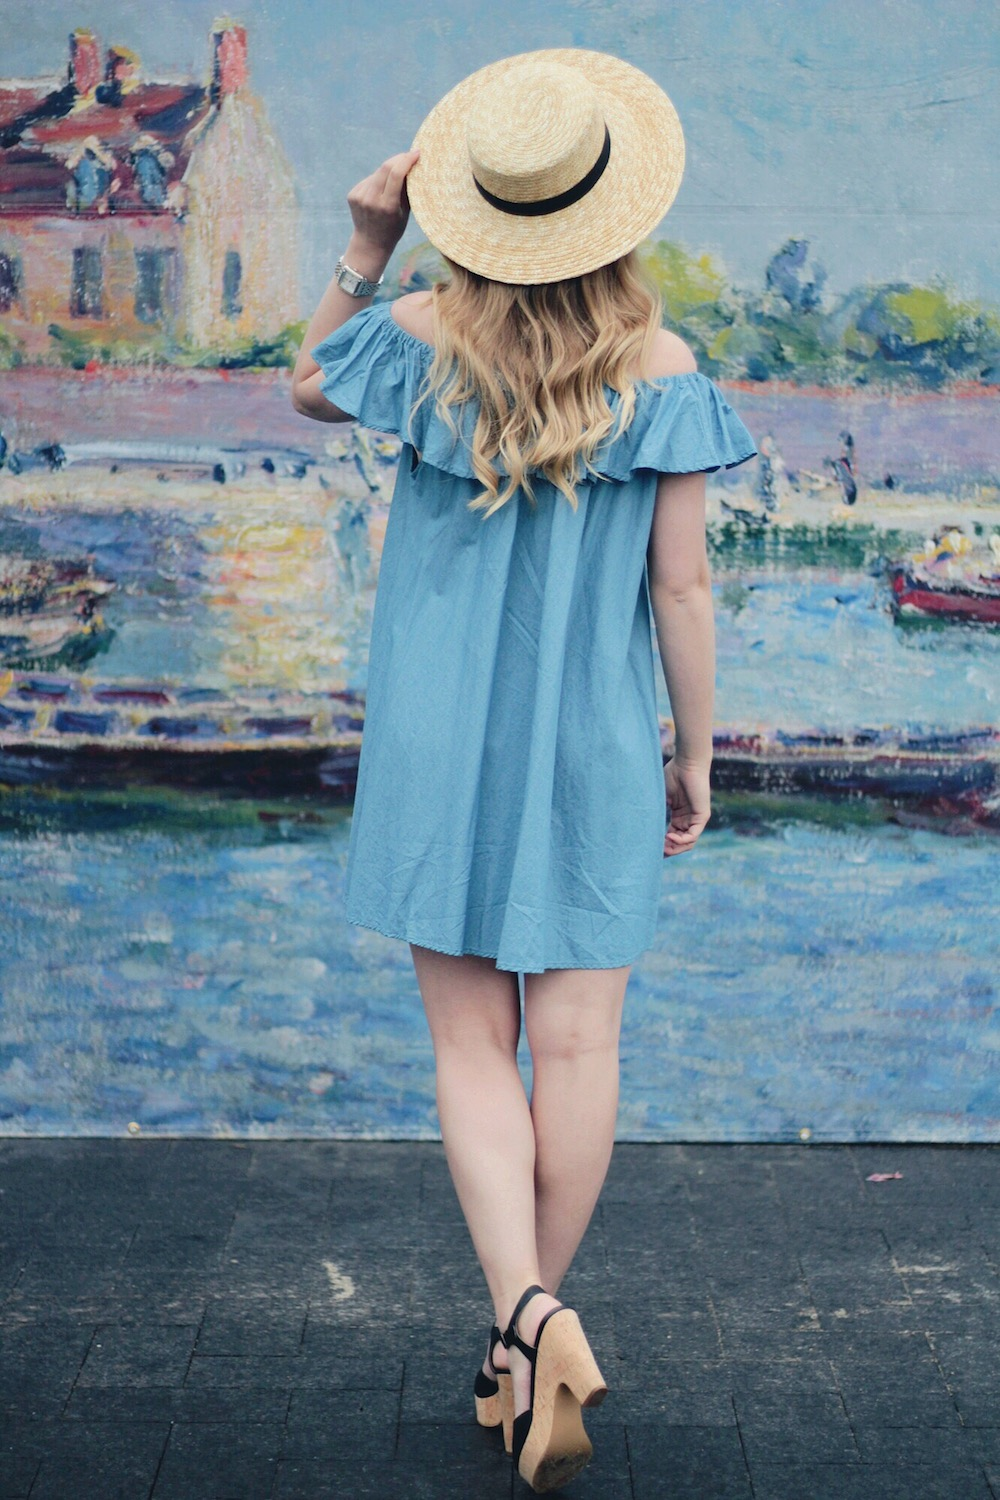 boater hat summer style